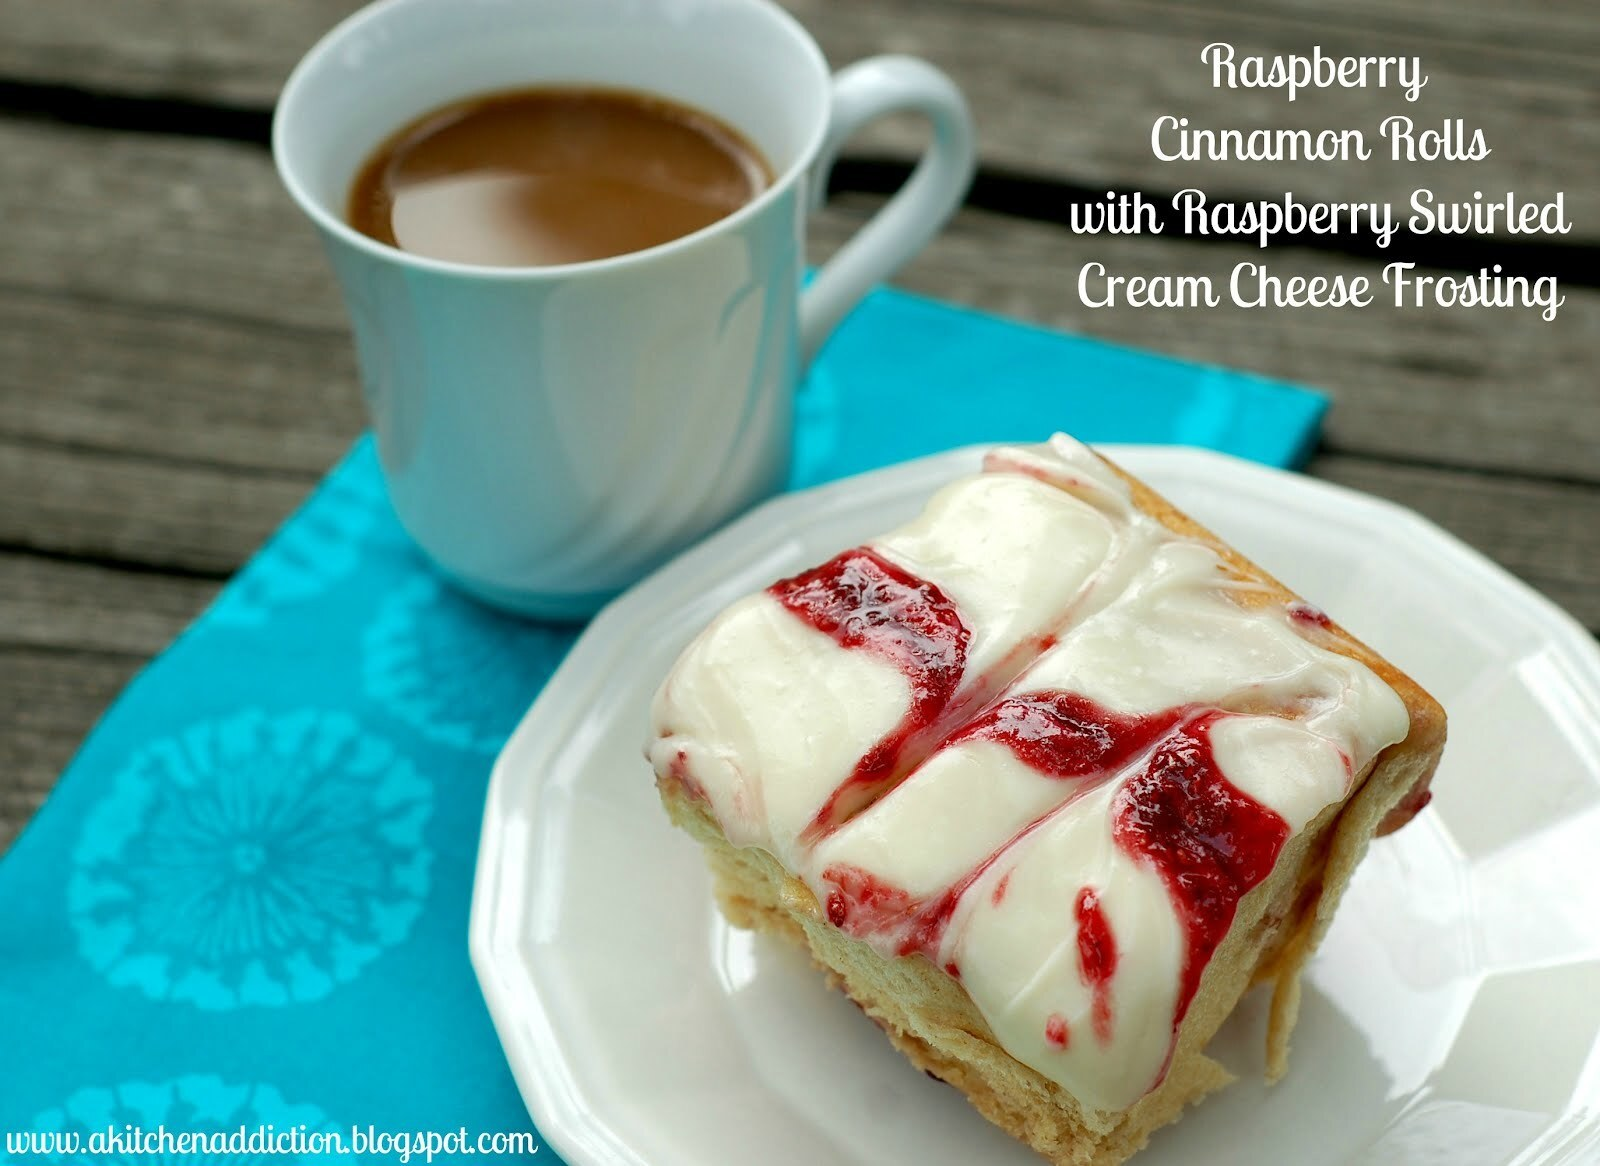 Raspberry Cinnamon Rolls with Raspberry Swirled Cream Cheese Frosting with Jessica from A Kitchen Addiction